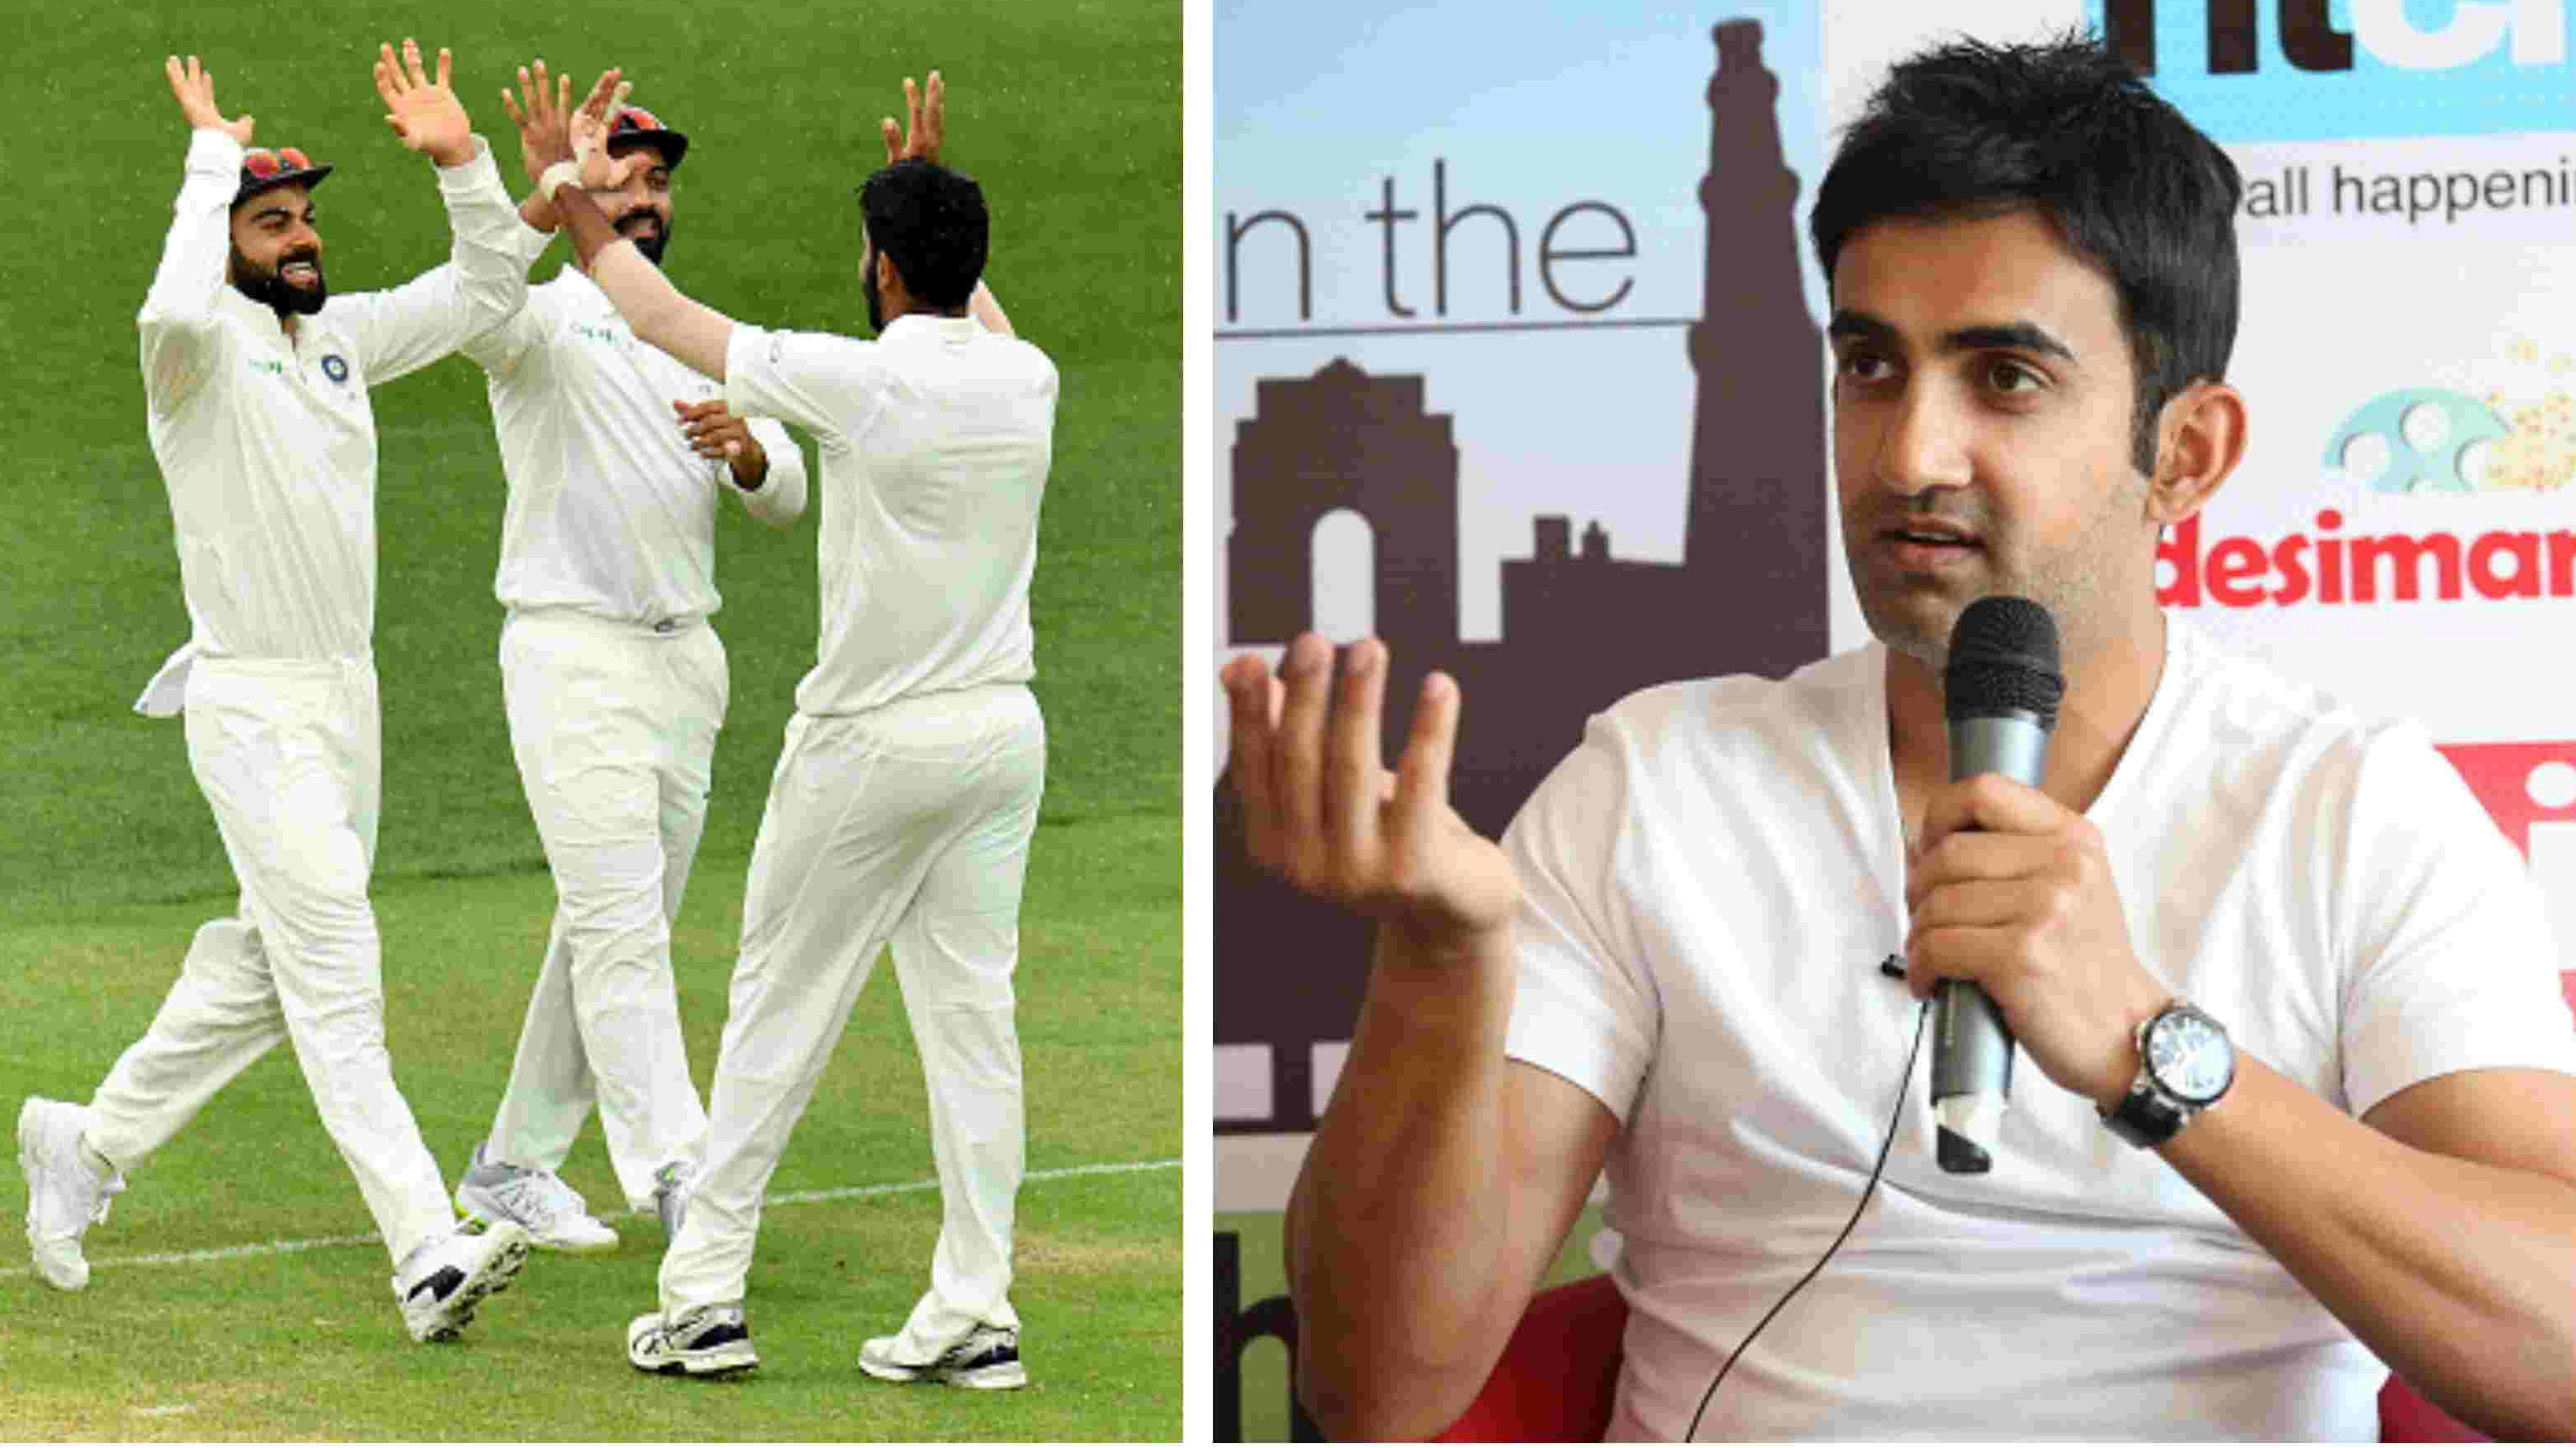 AUS v IND 2018-19: Gautam Gambhir credits Virat Kohli for identifying the current lot of fast bowlers